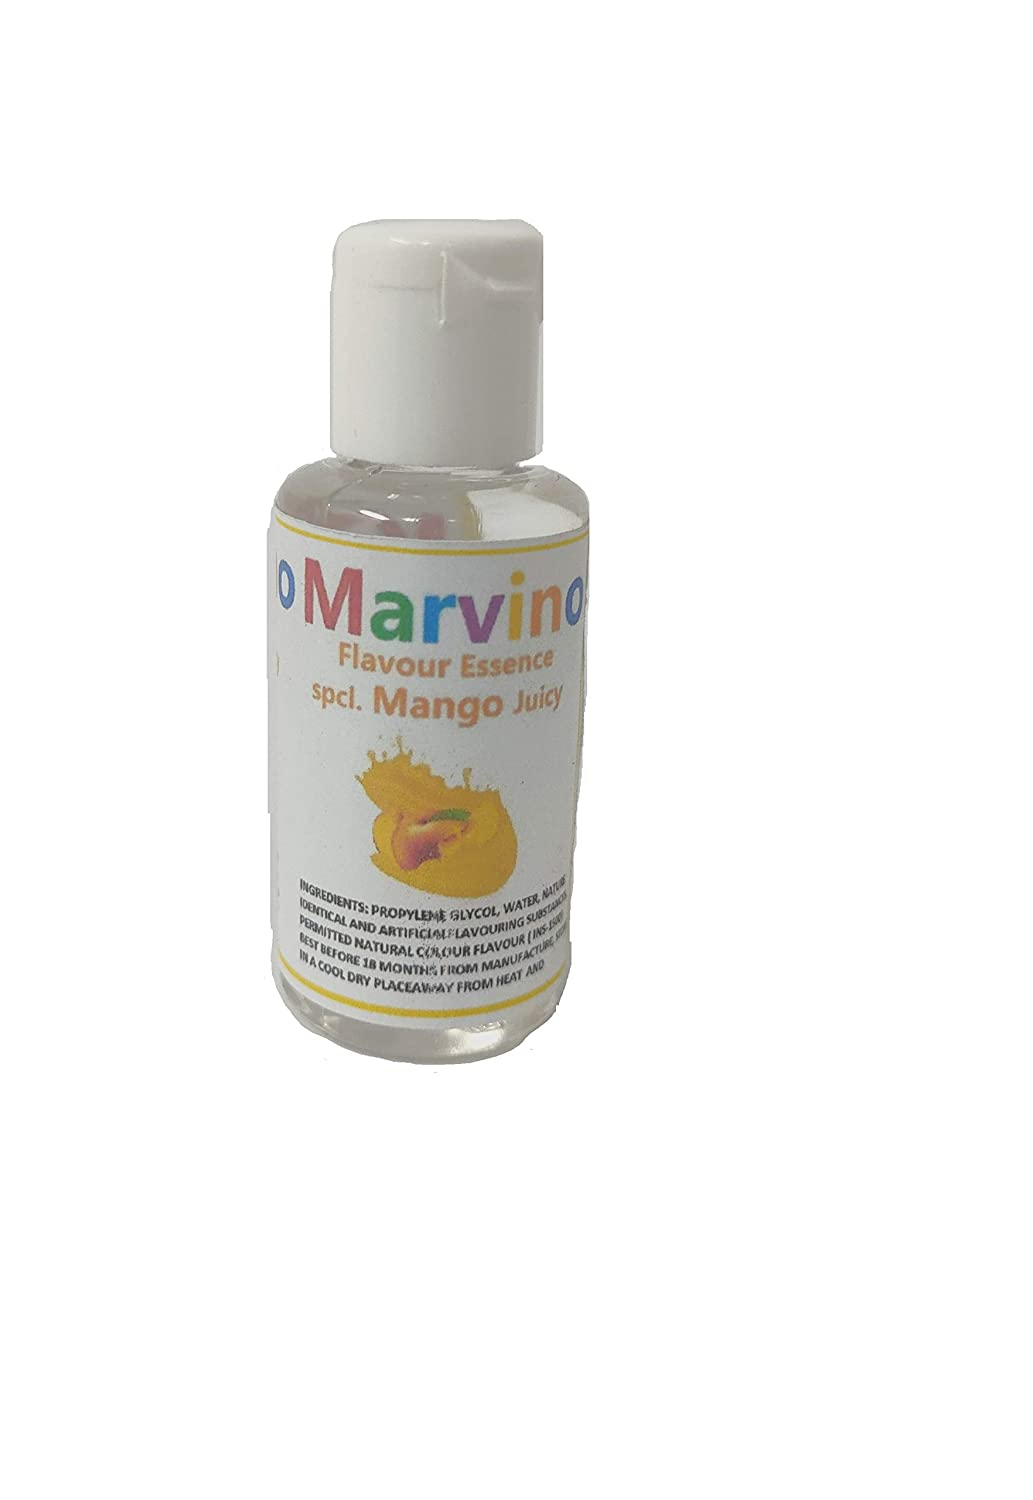 Marvino 6 Fruit Flavour Essence Extracts Pineaple Banana Strawbery Mango Orange Apple For Flavouring Cakes Sweets Choclates Icecreams